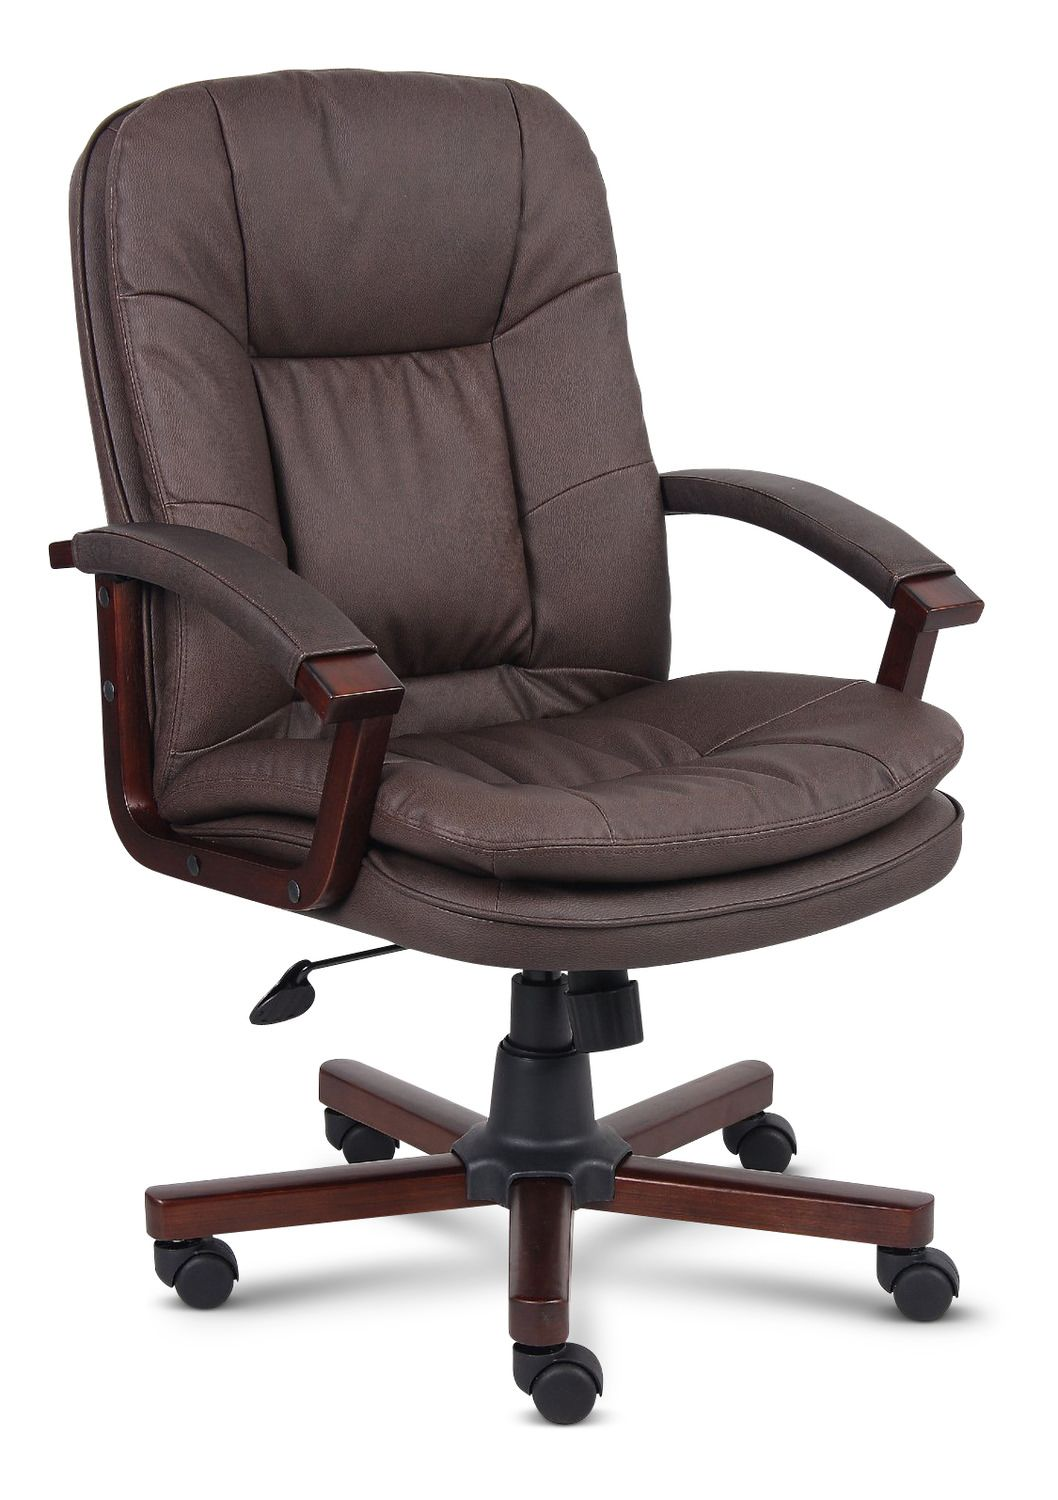 Brown Bomber Leather Office Chair Executive office